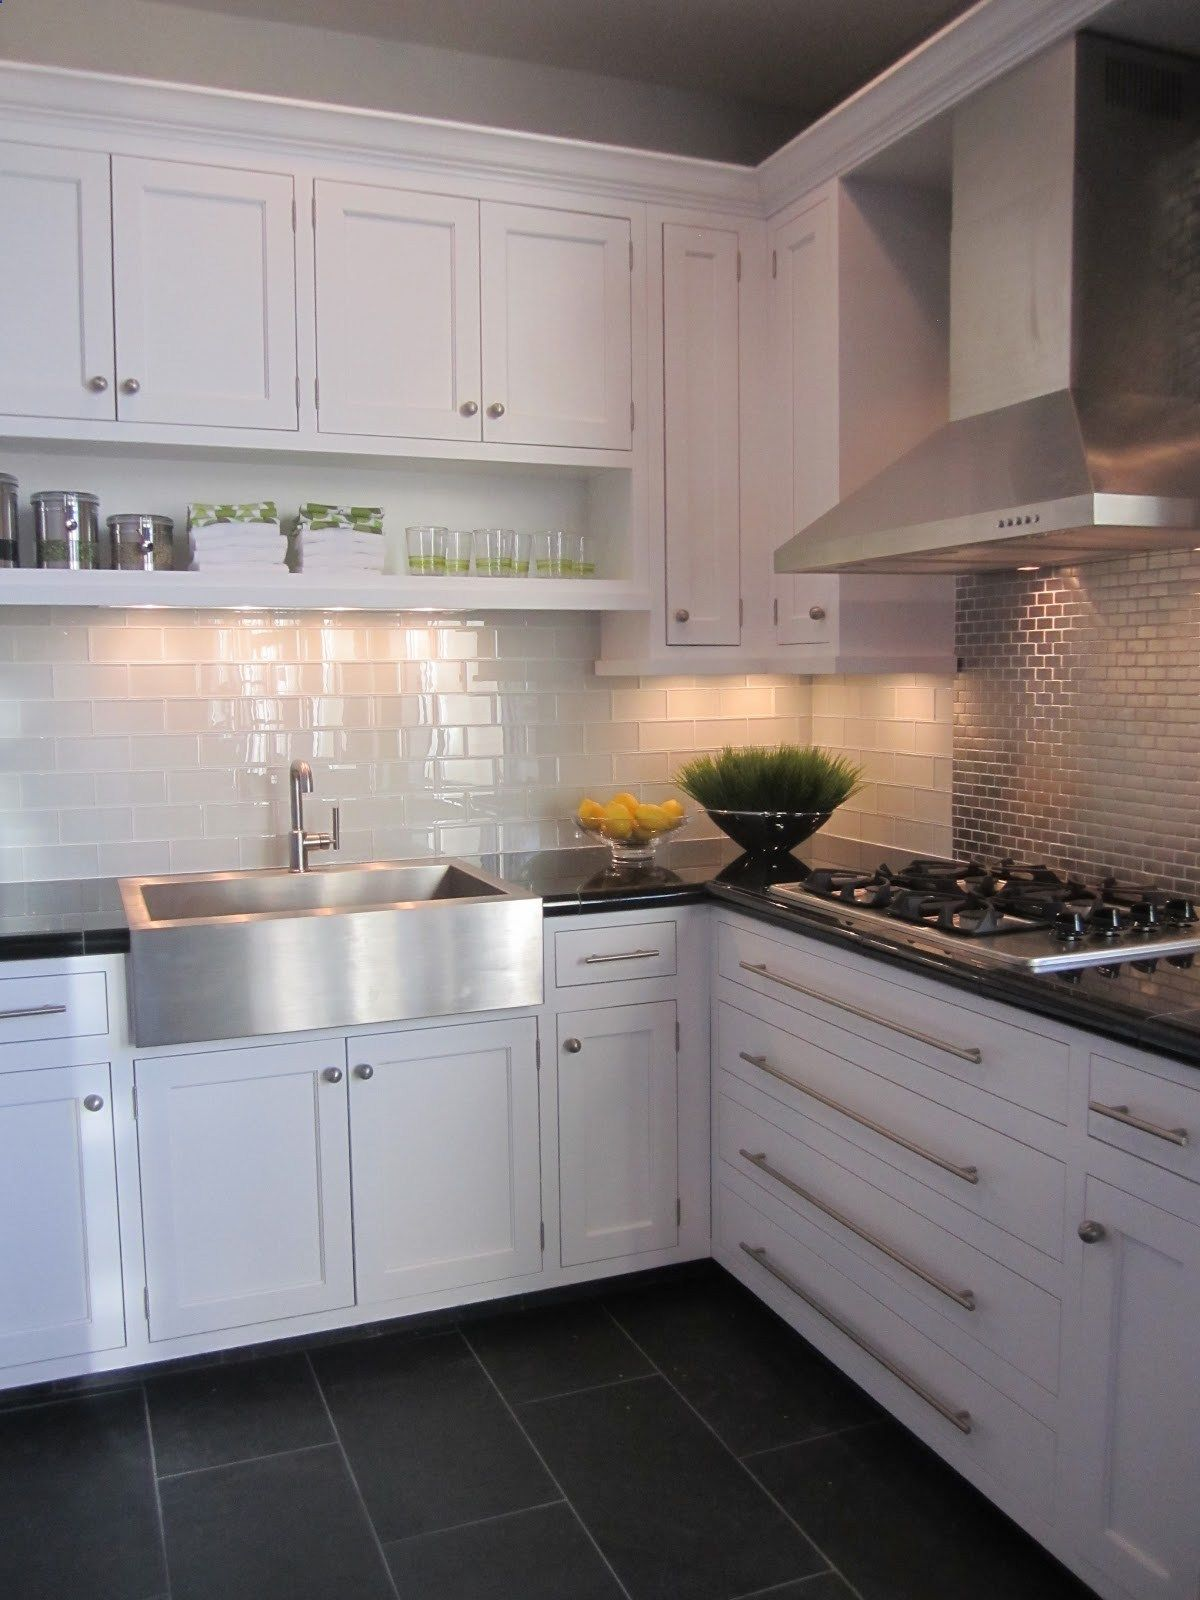 Download Wallpaper Grey And White Kitchen With Grey Floor